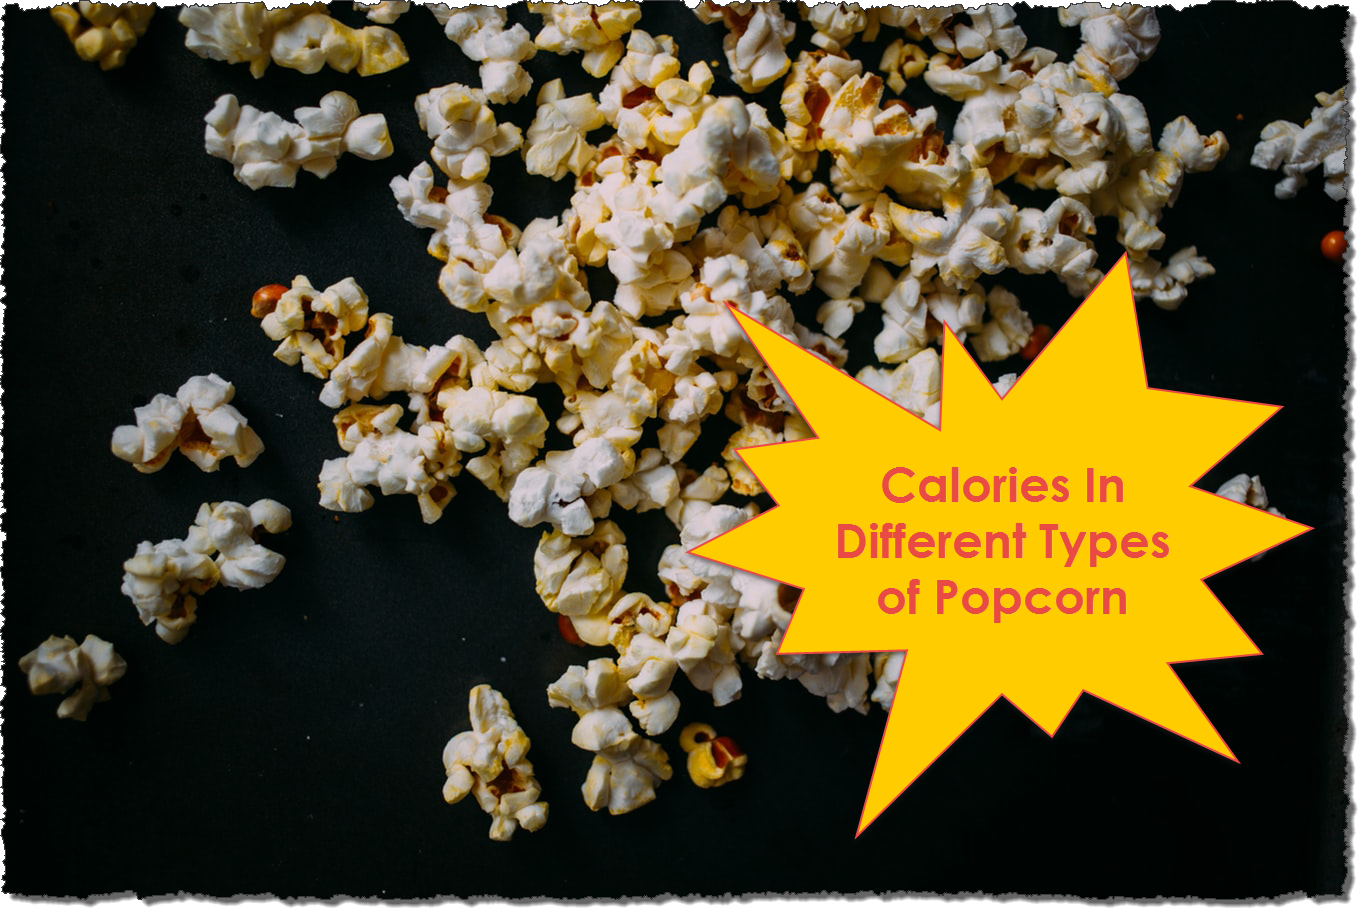 Calories In Different Types of Popcorn